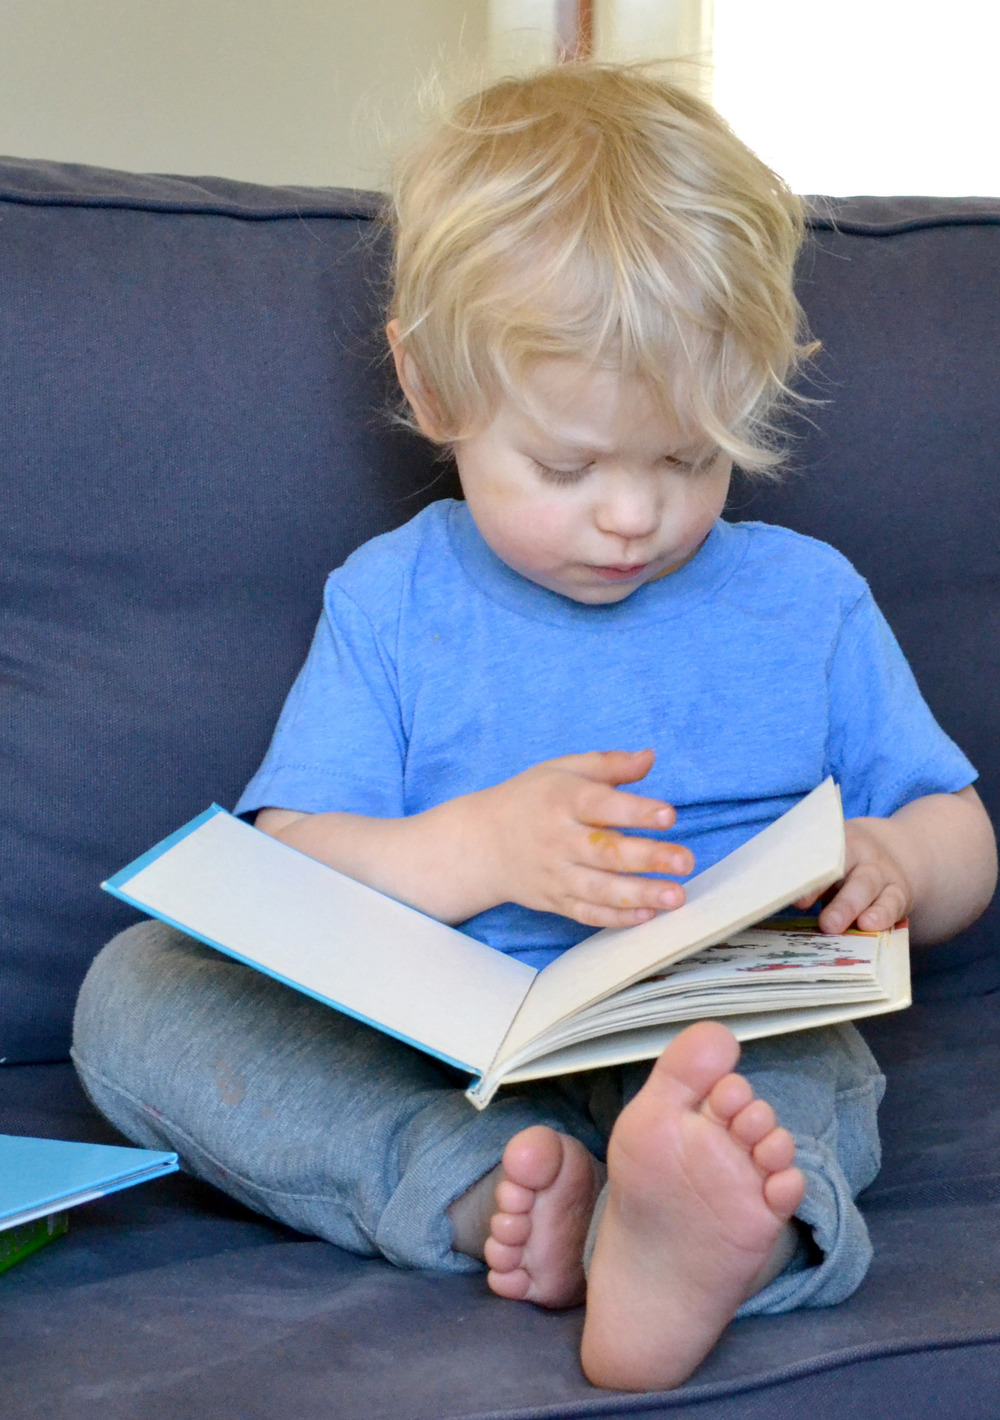 This was one of the first shots I have taken in awhile, his cheeks weren't bright red. My happy little reader!